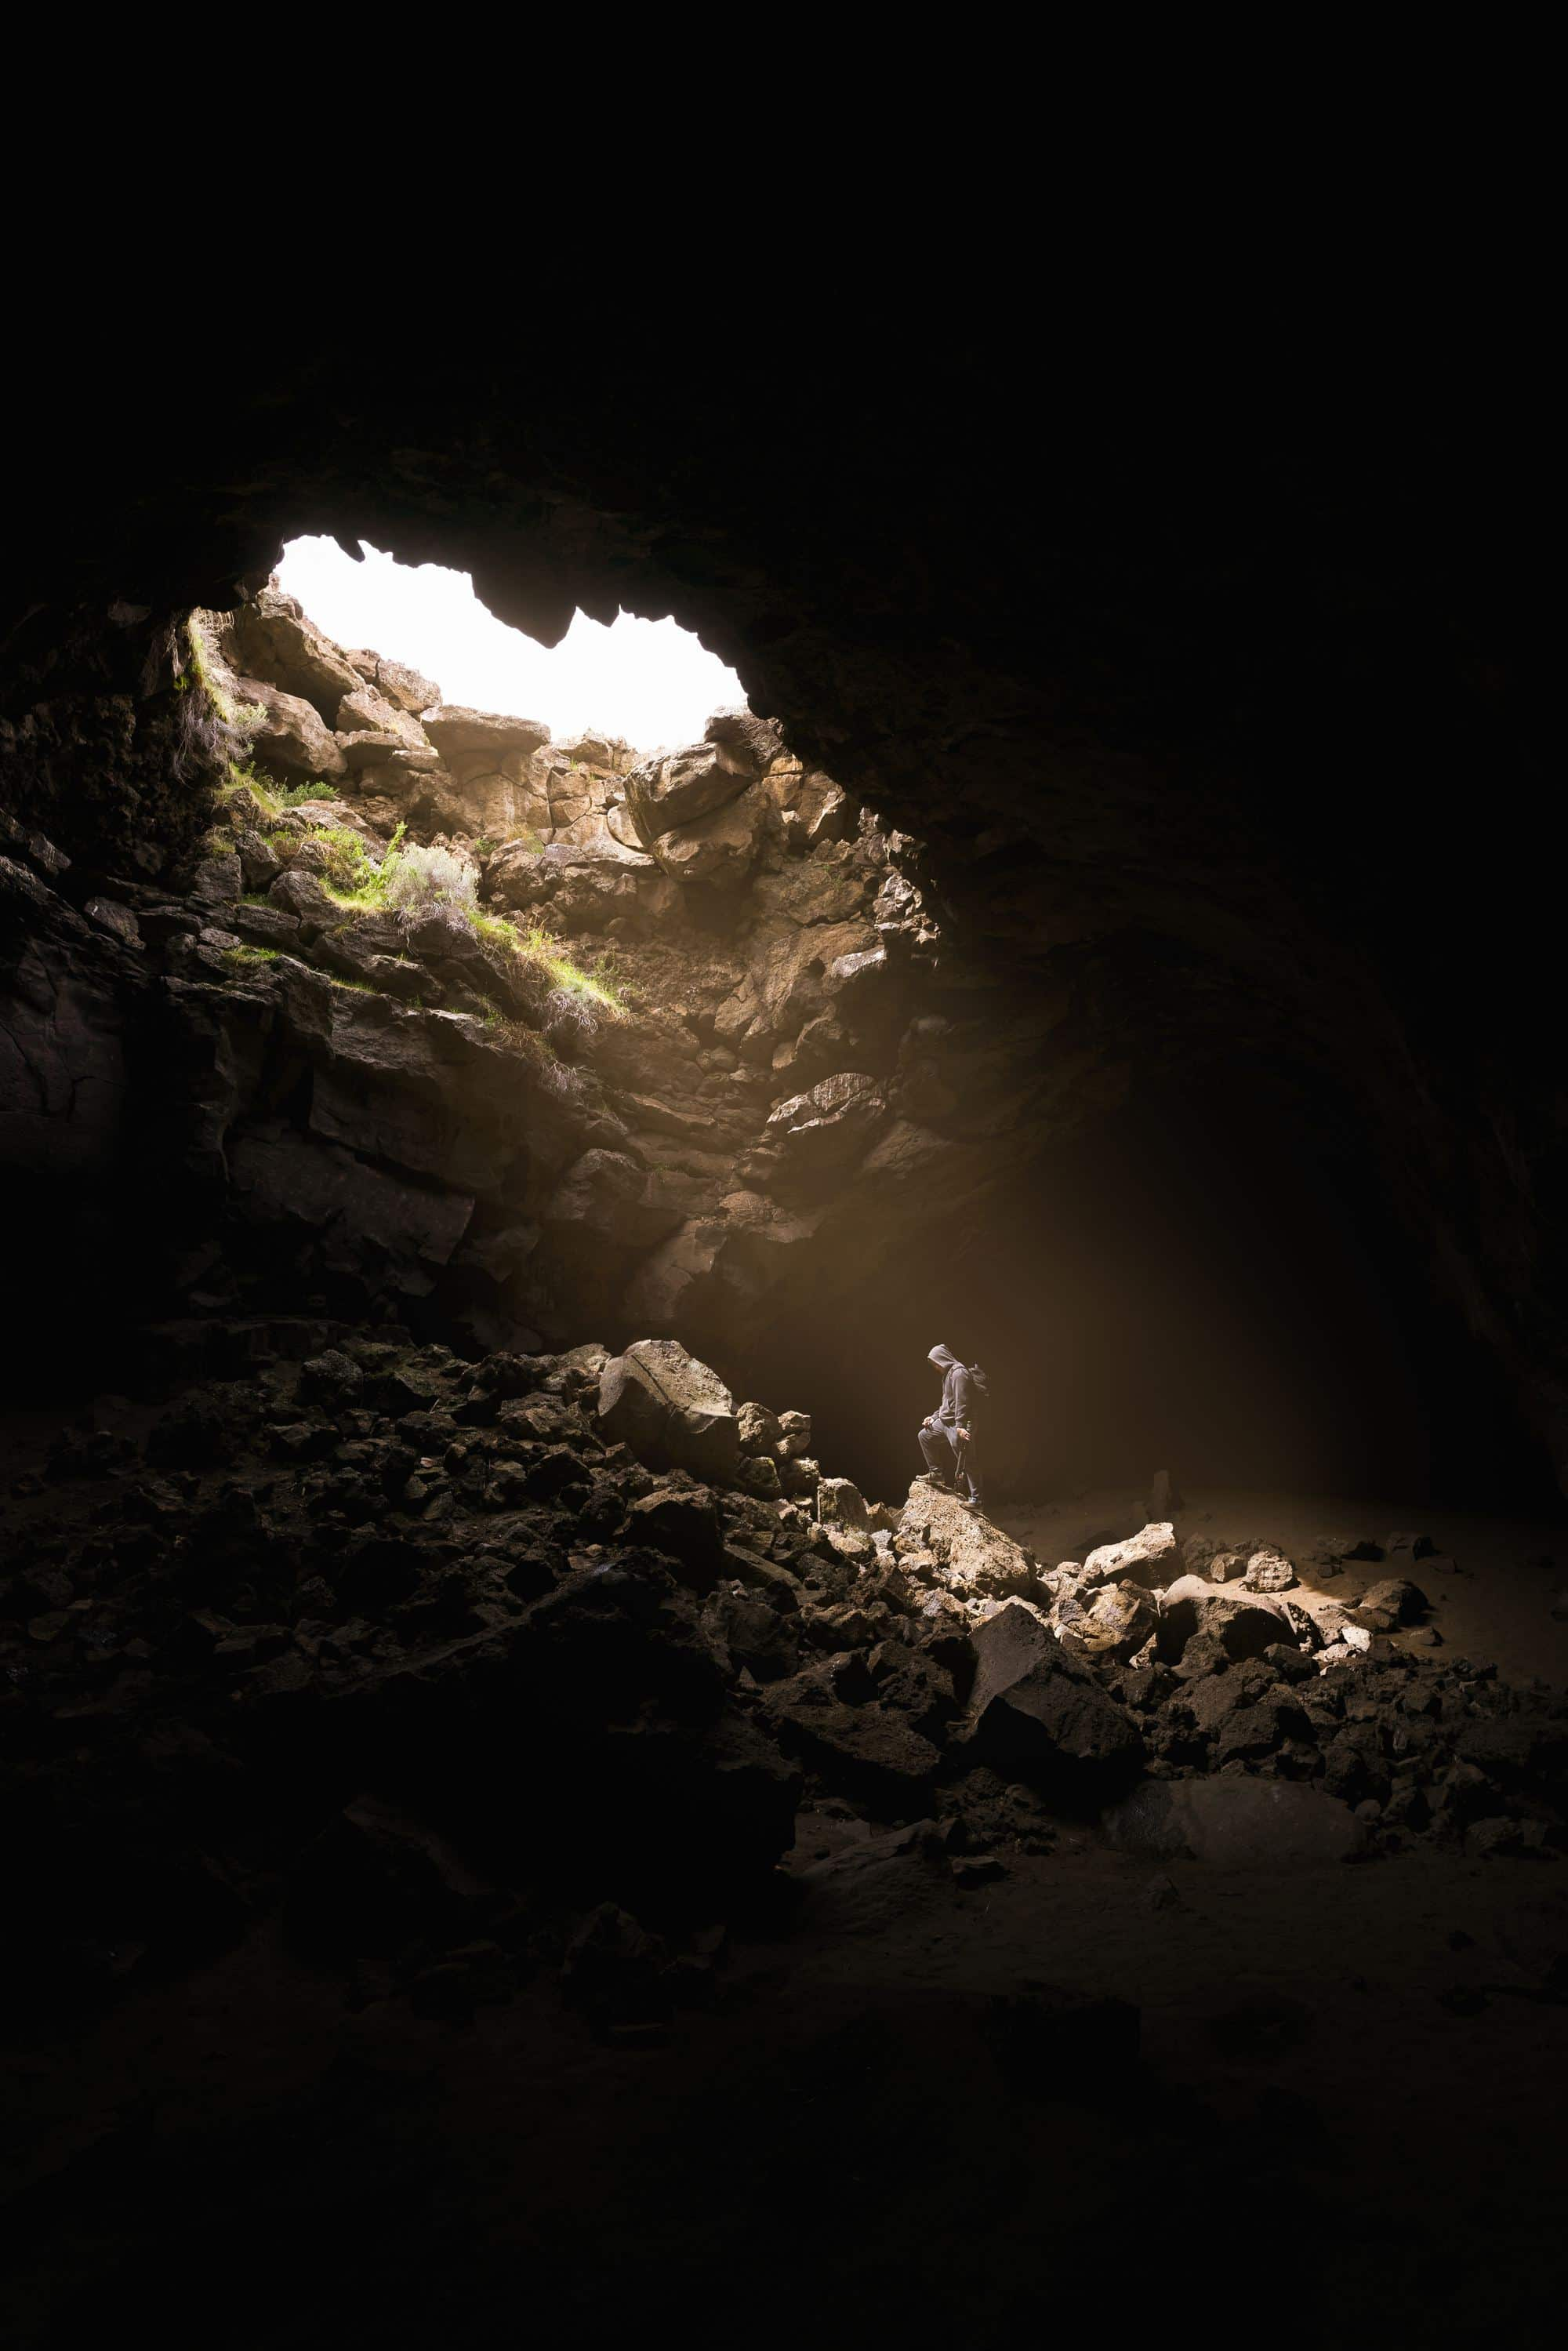 person inside an underground cave, looking up at sublight filtering down